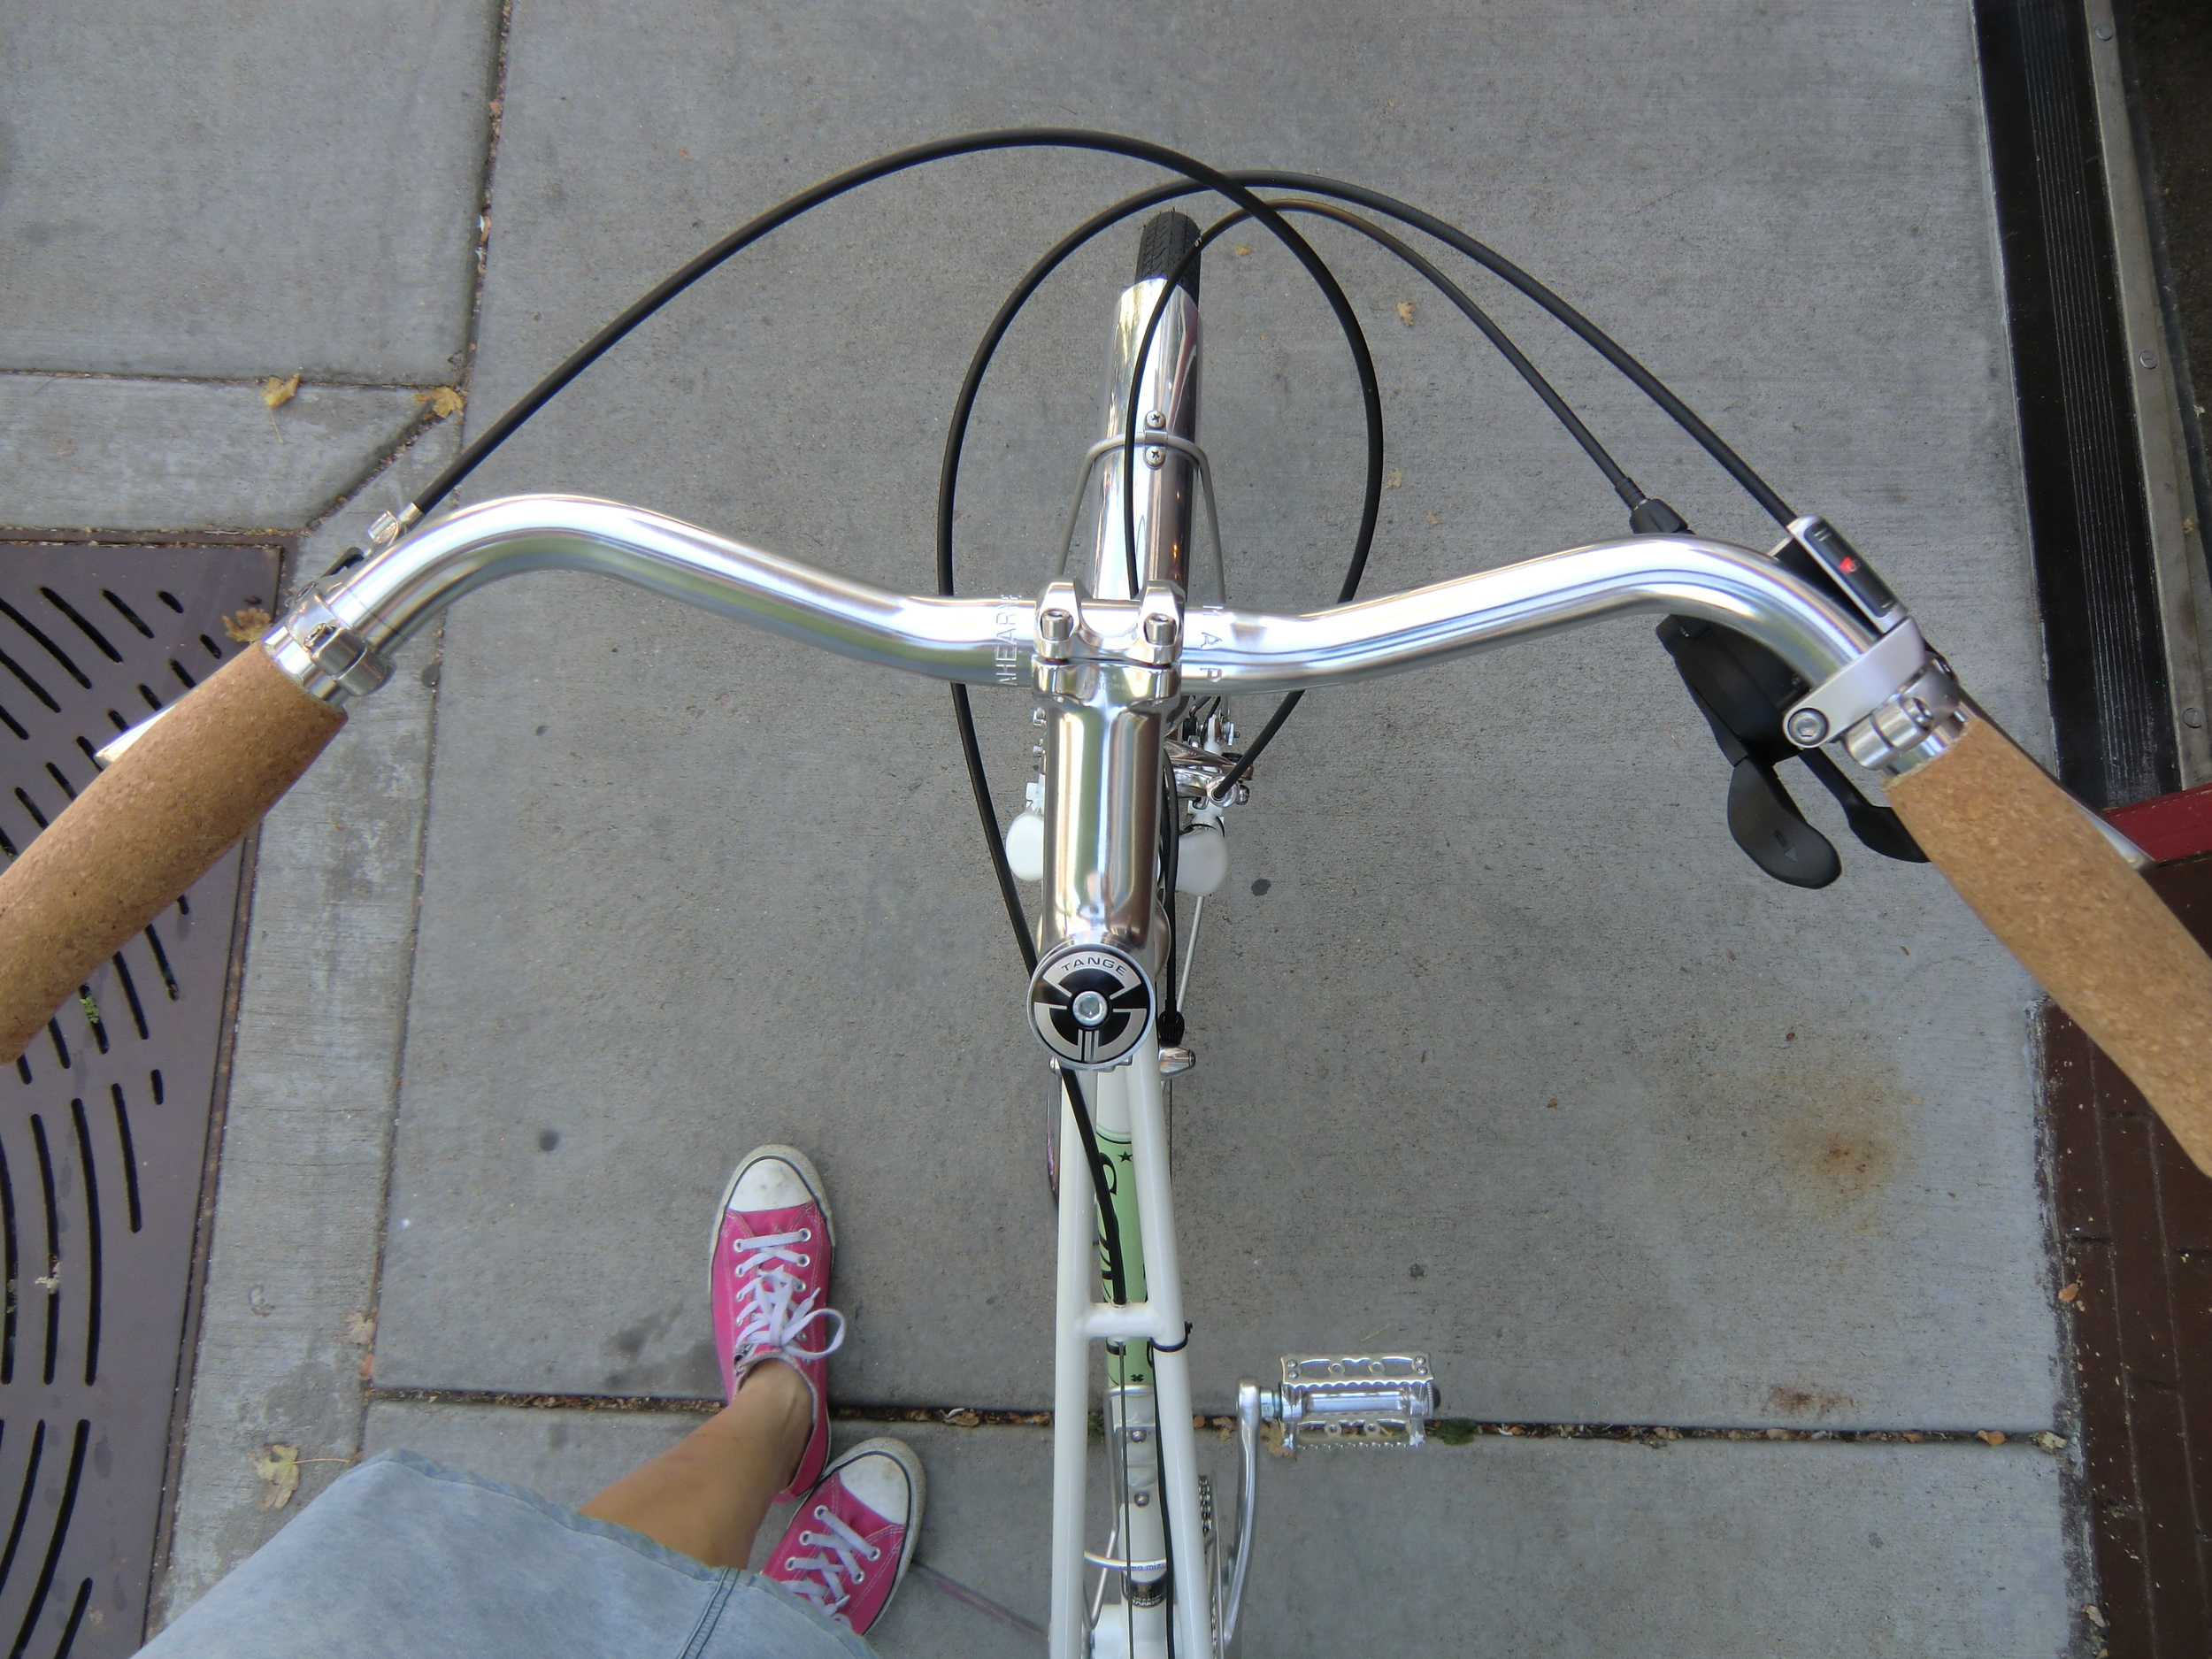 New Handlebar we like by Ahearn. Sporty and Upright.